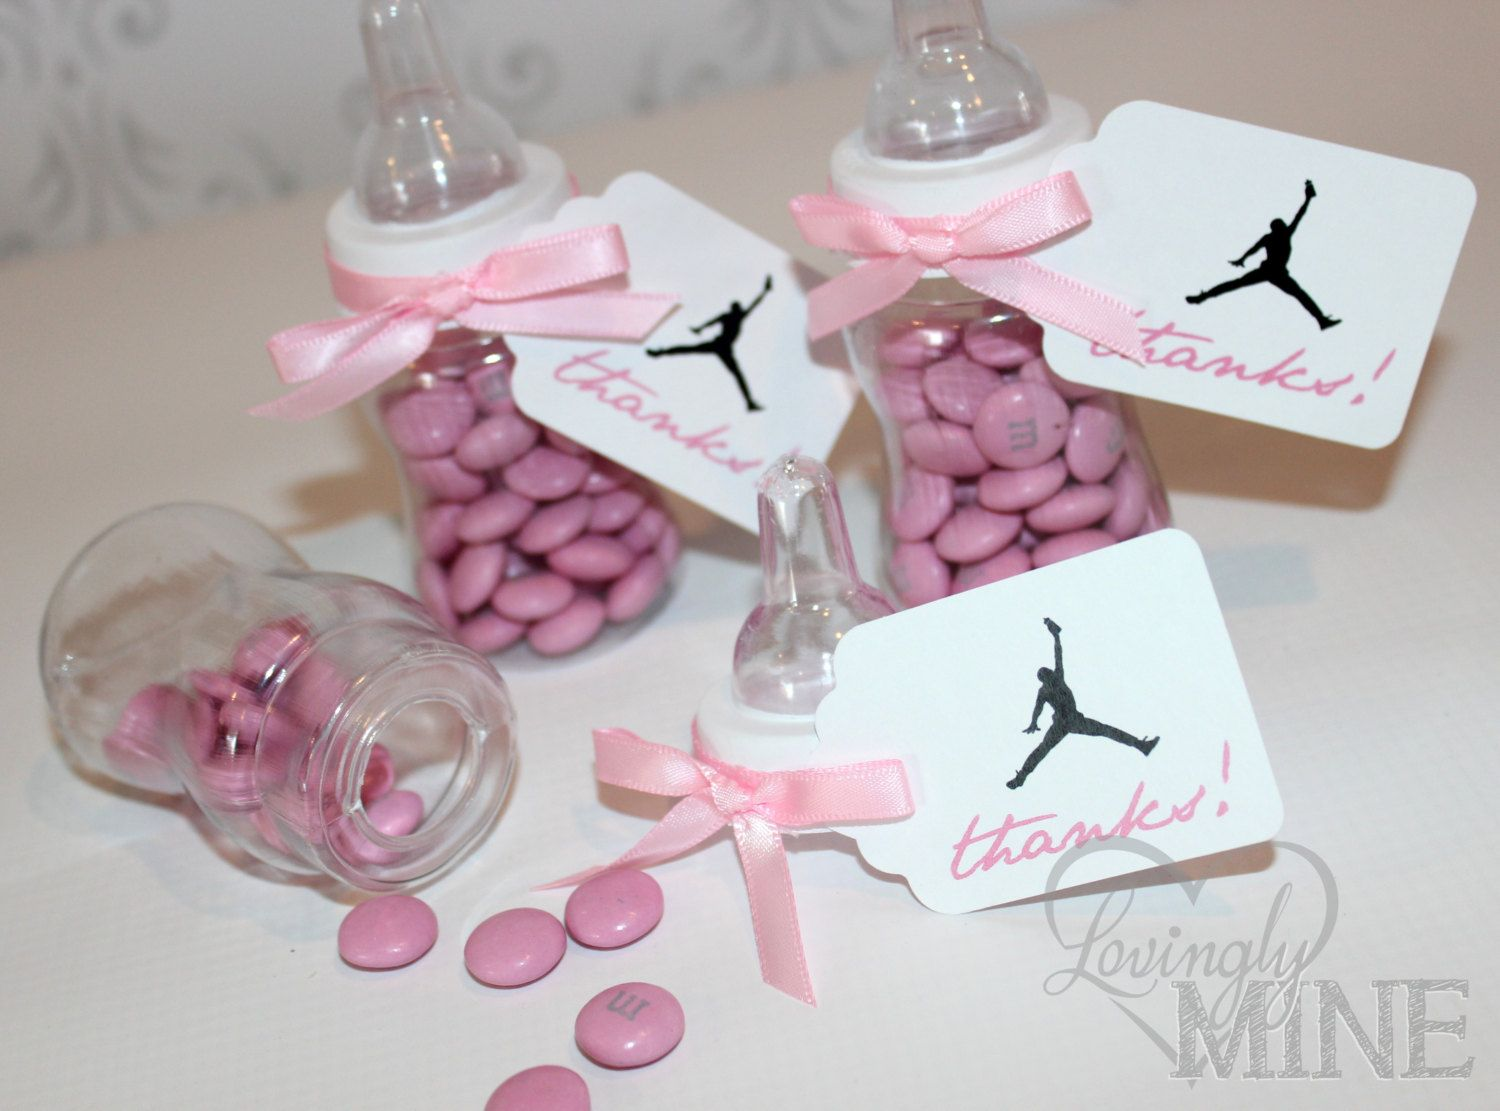 Jordan Jumpman Inspired Baby Shower Favors   Plastic Baby Bottles   12 Per  Set   Pink